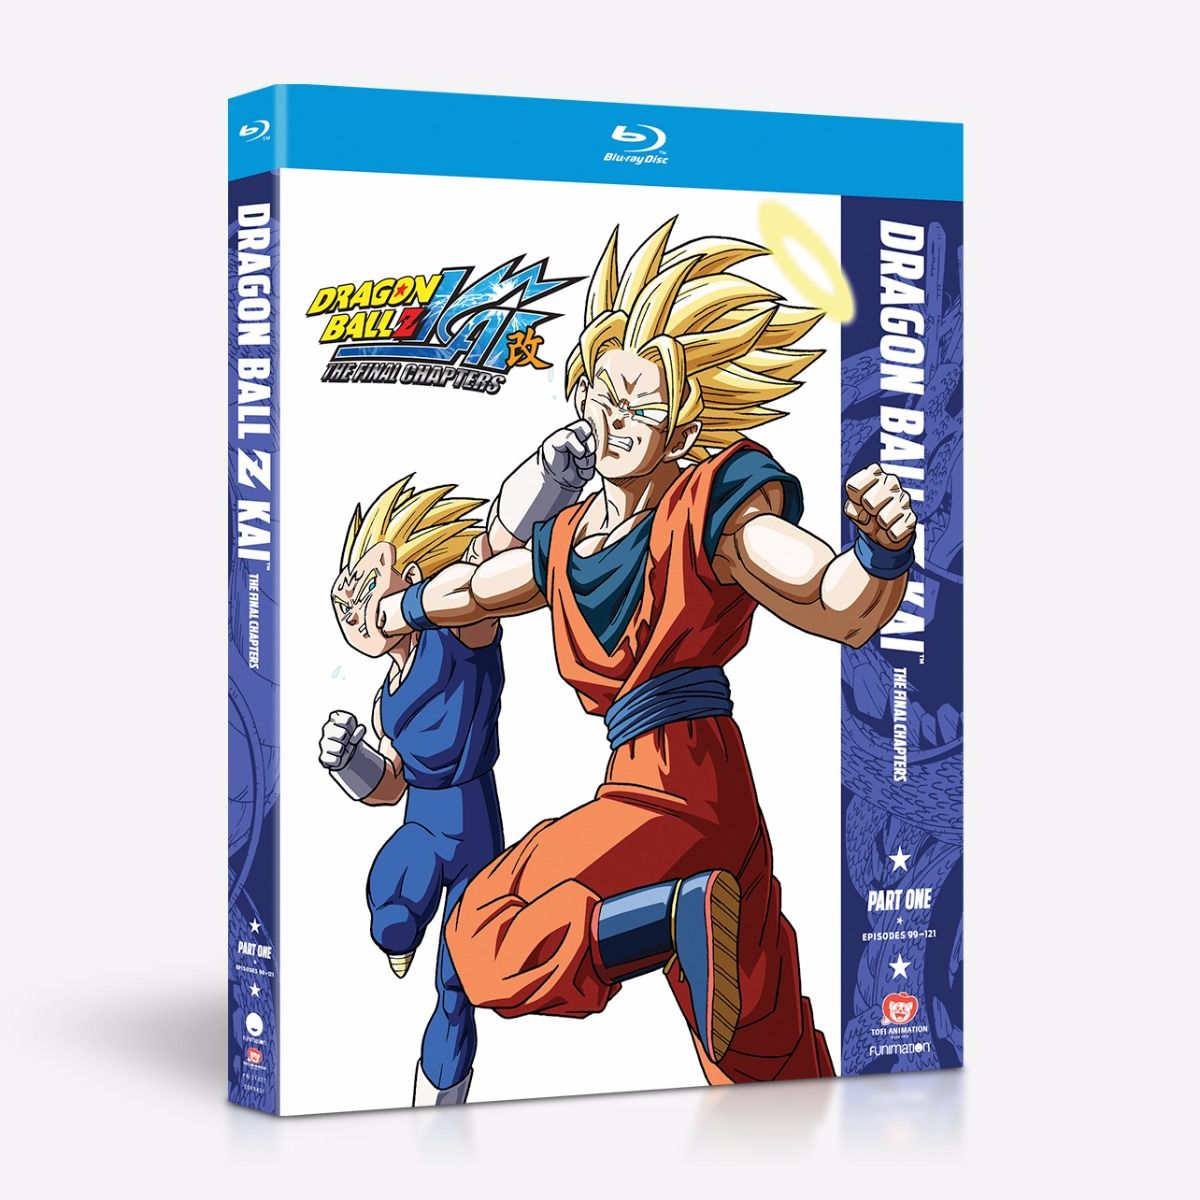 Dragon Ball Z Kai The Final Chapters Part 1 Blu-ray 704400016370